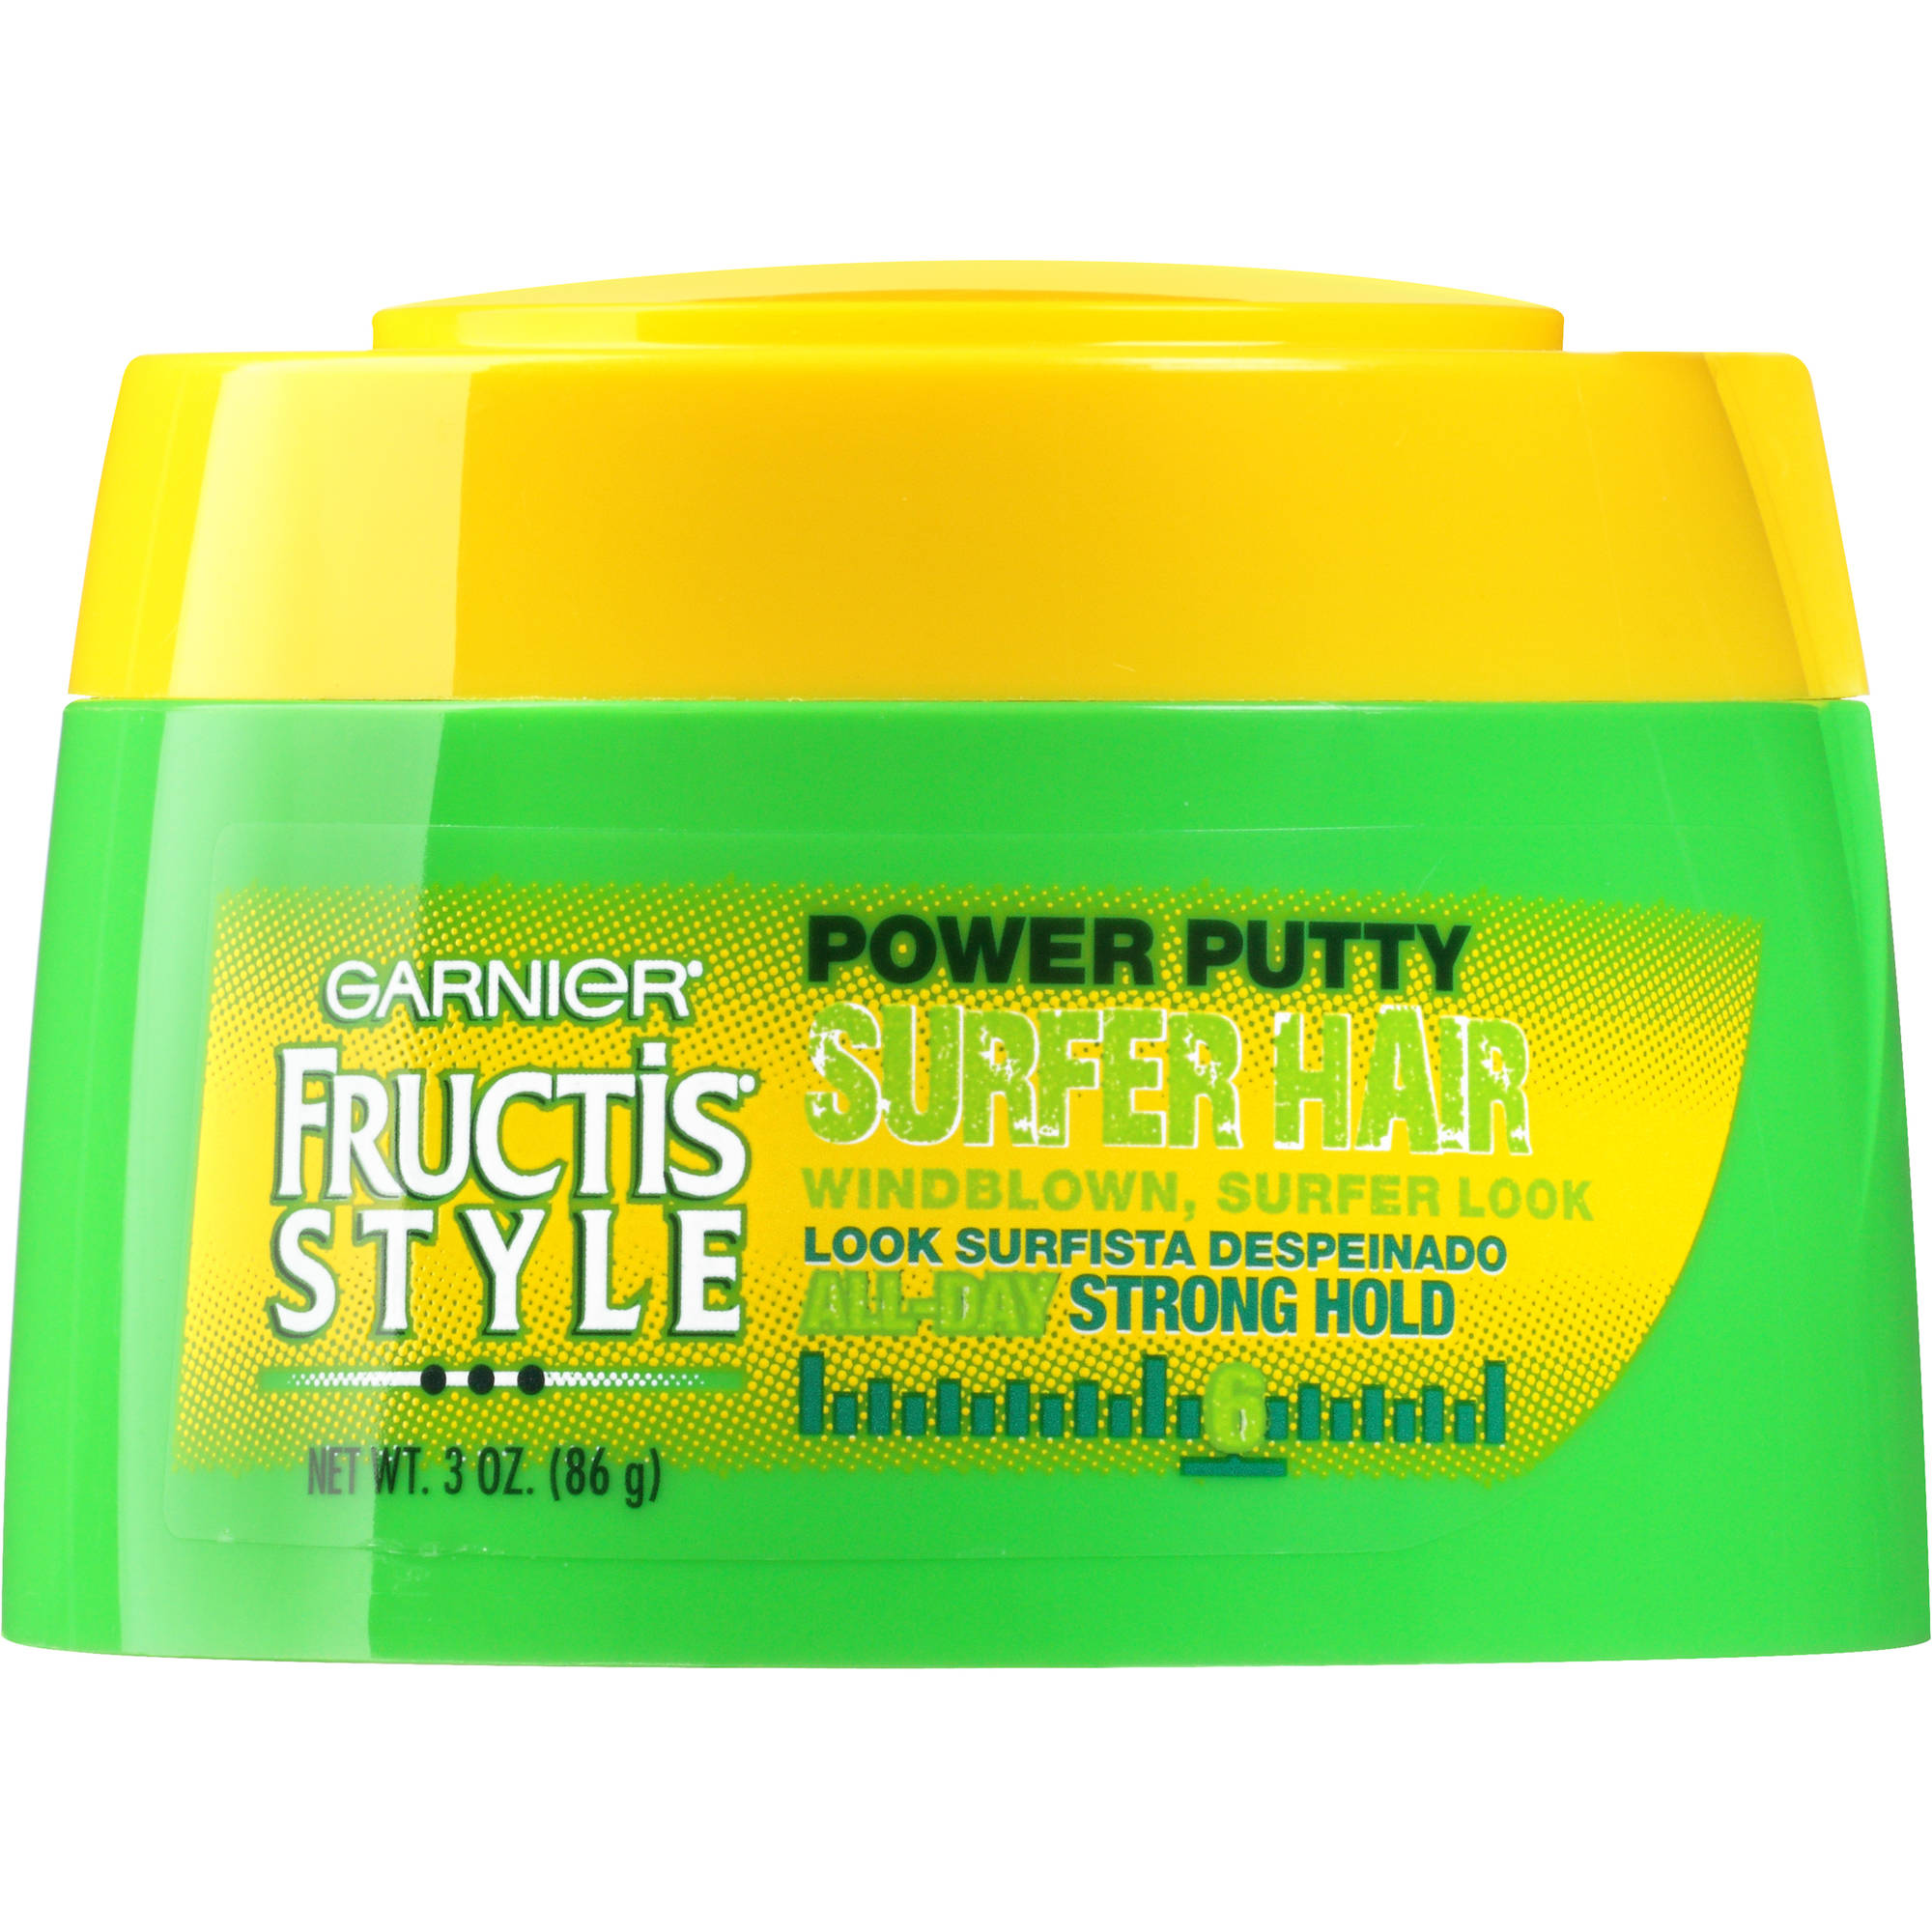 Garnier® Fructis   Style® Power Putty Surfer Hair For Men 3 OZ